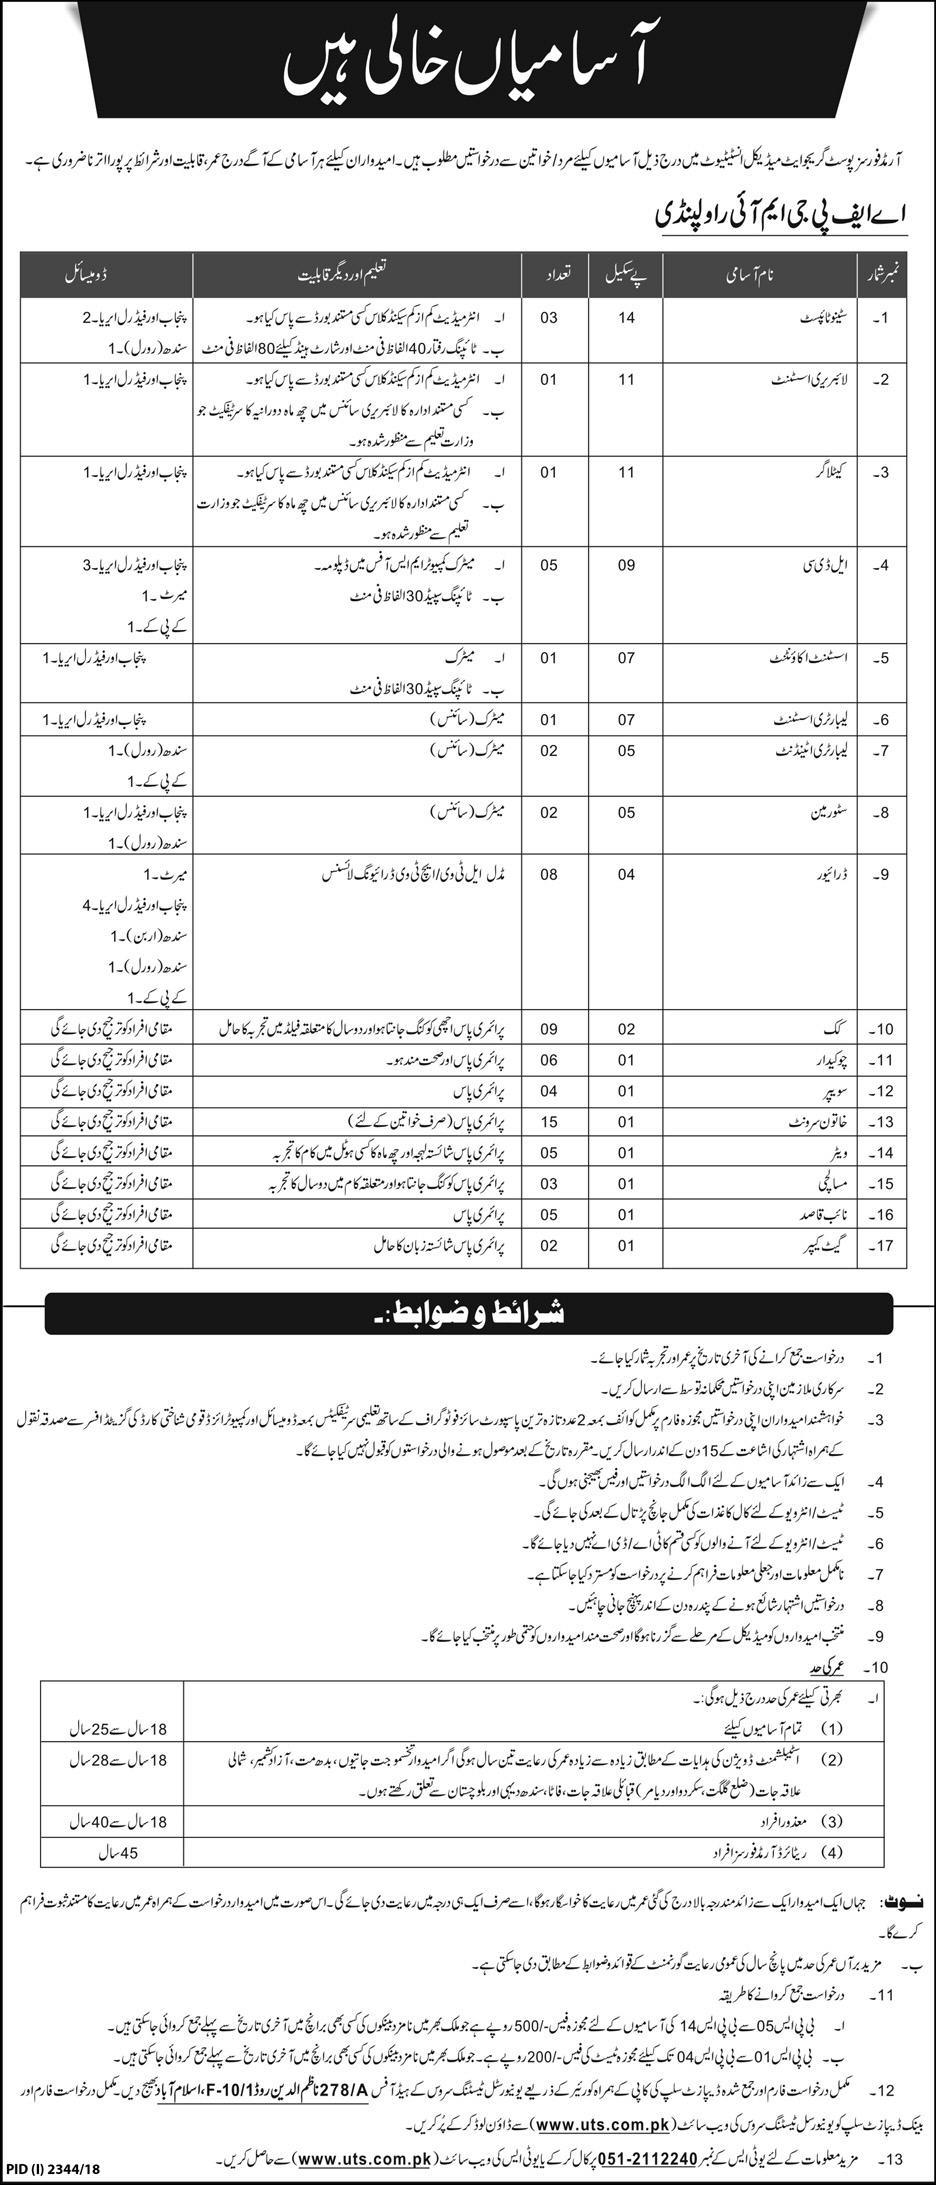 Armed Forces Post Graduate Medical Institute UTS Jobs 2021